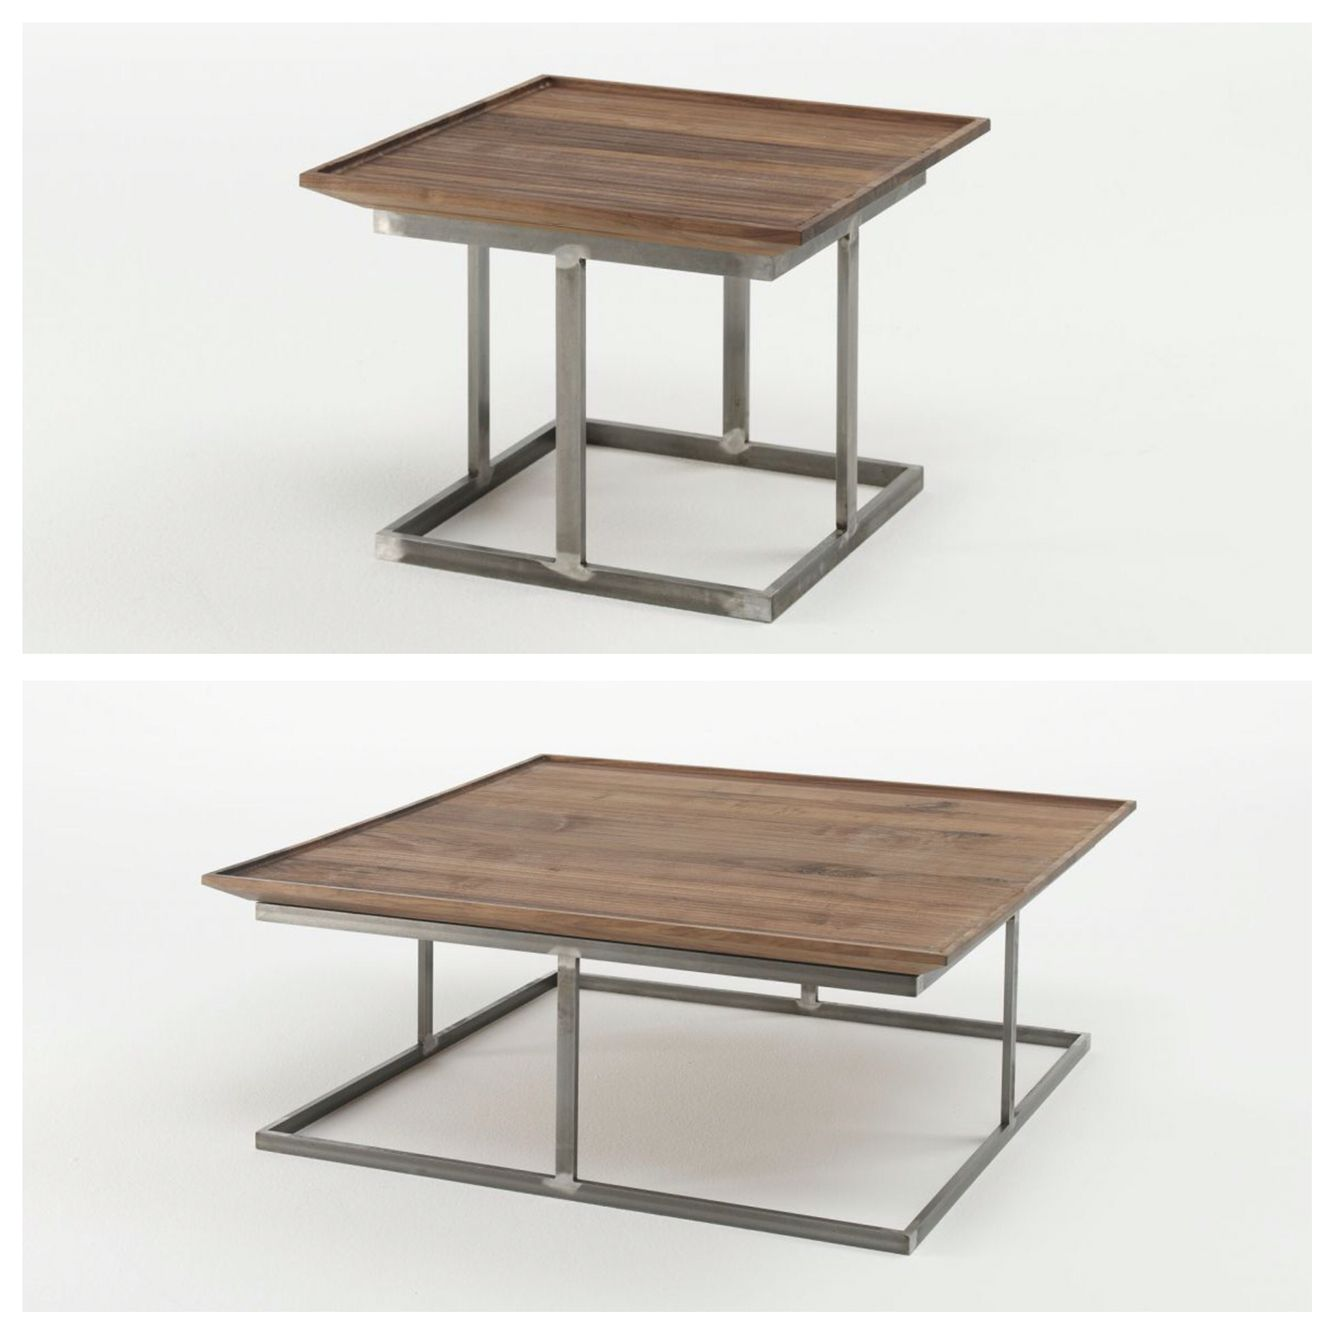 Riva Made In Italy., Top In Solid Wood: Nest Table, Project By C.